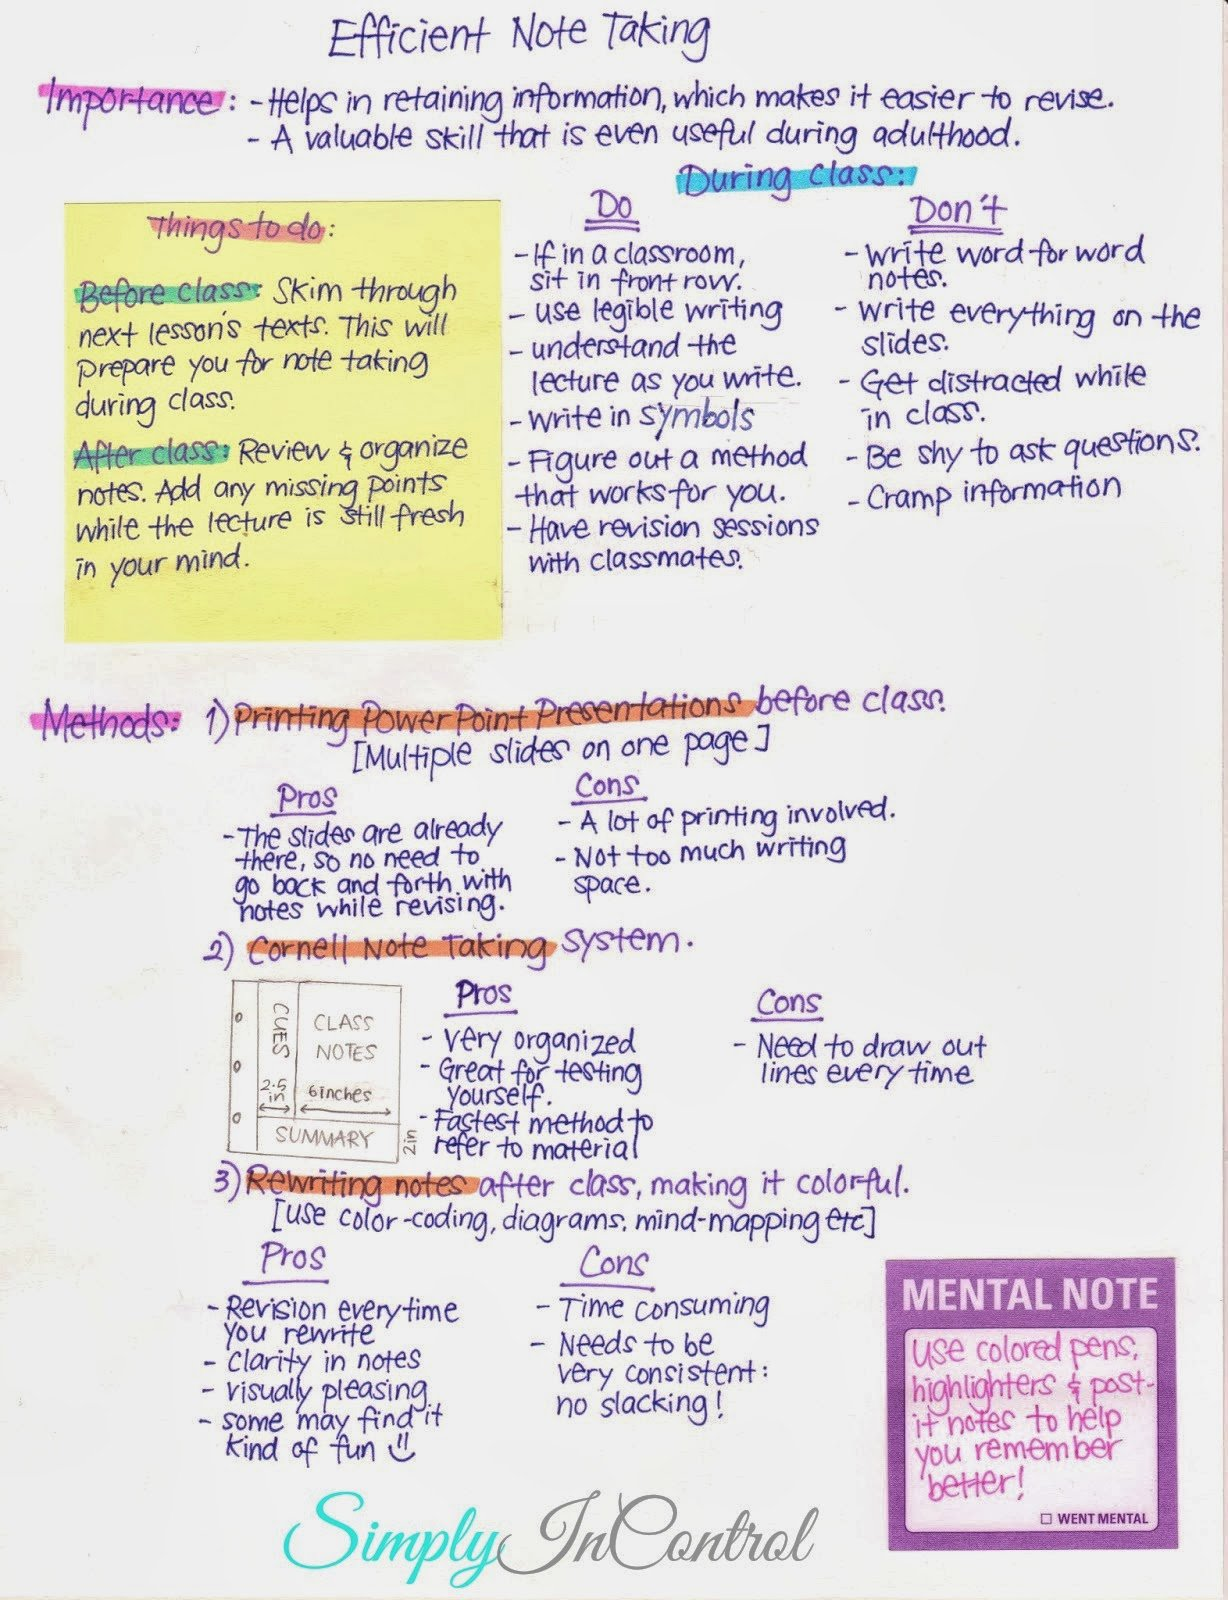 Simply In Control Note Taking Tips and Strategies